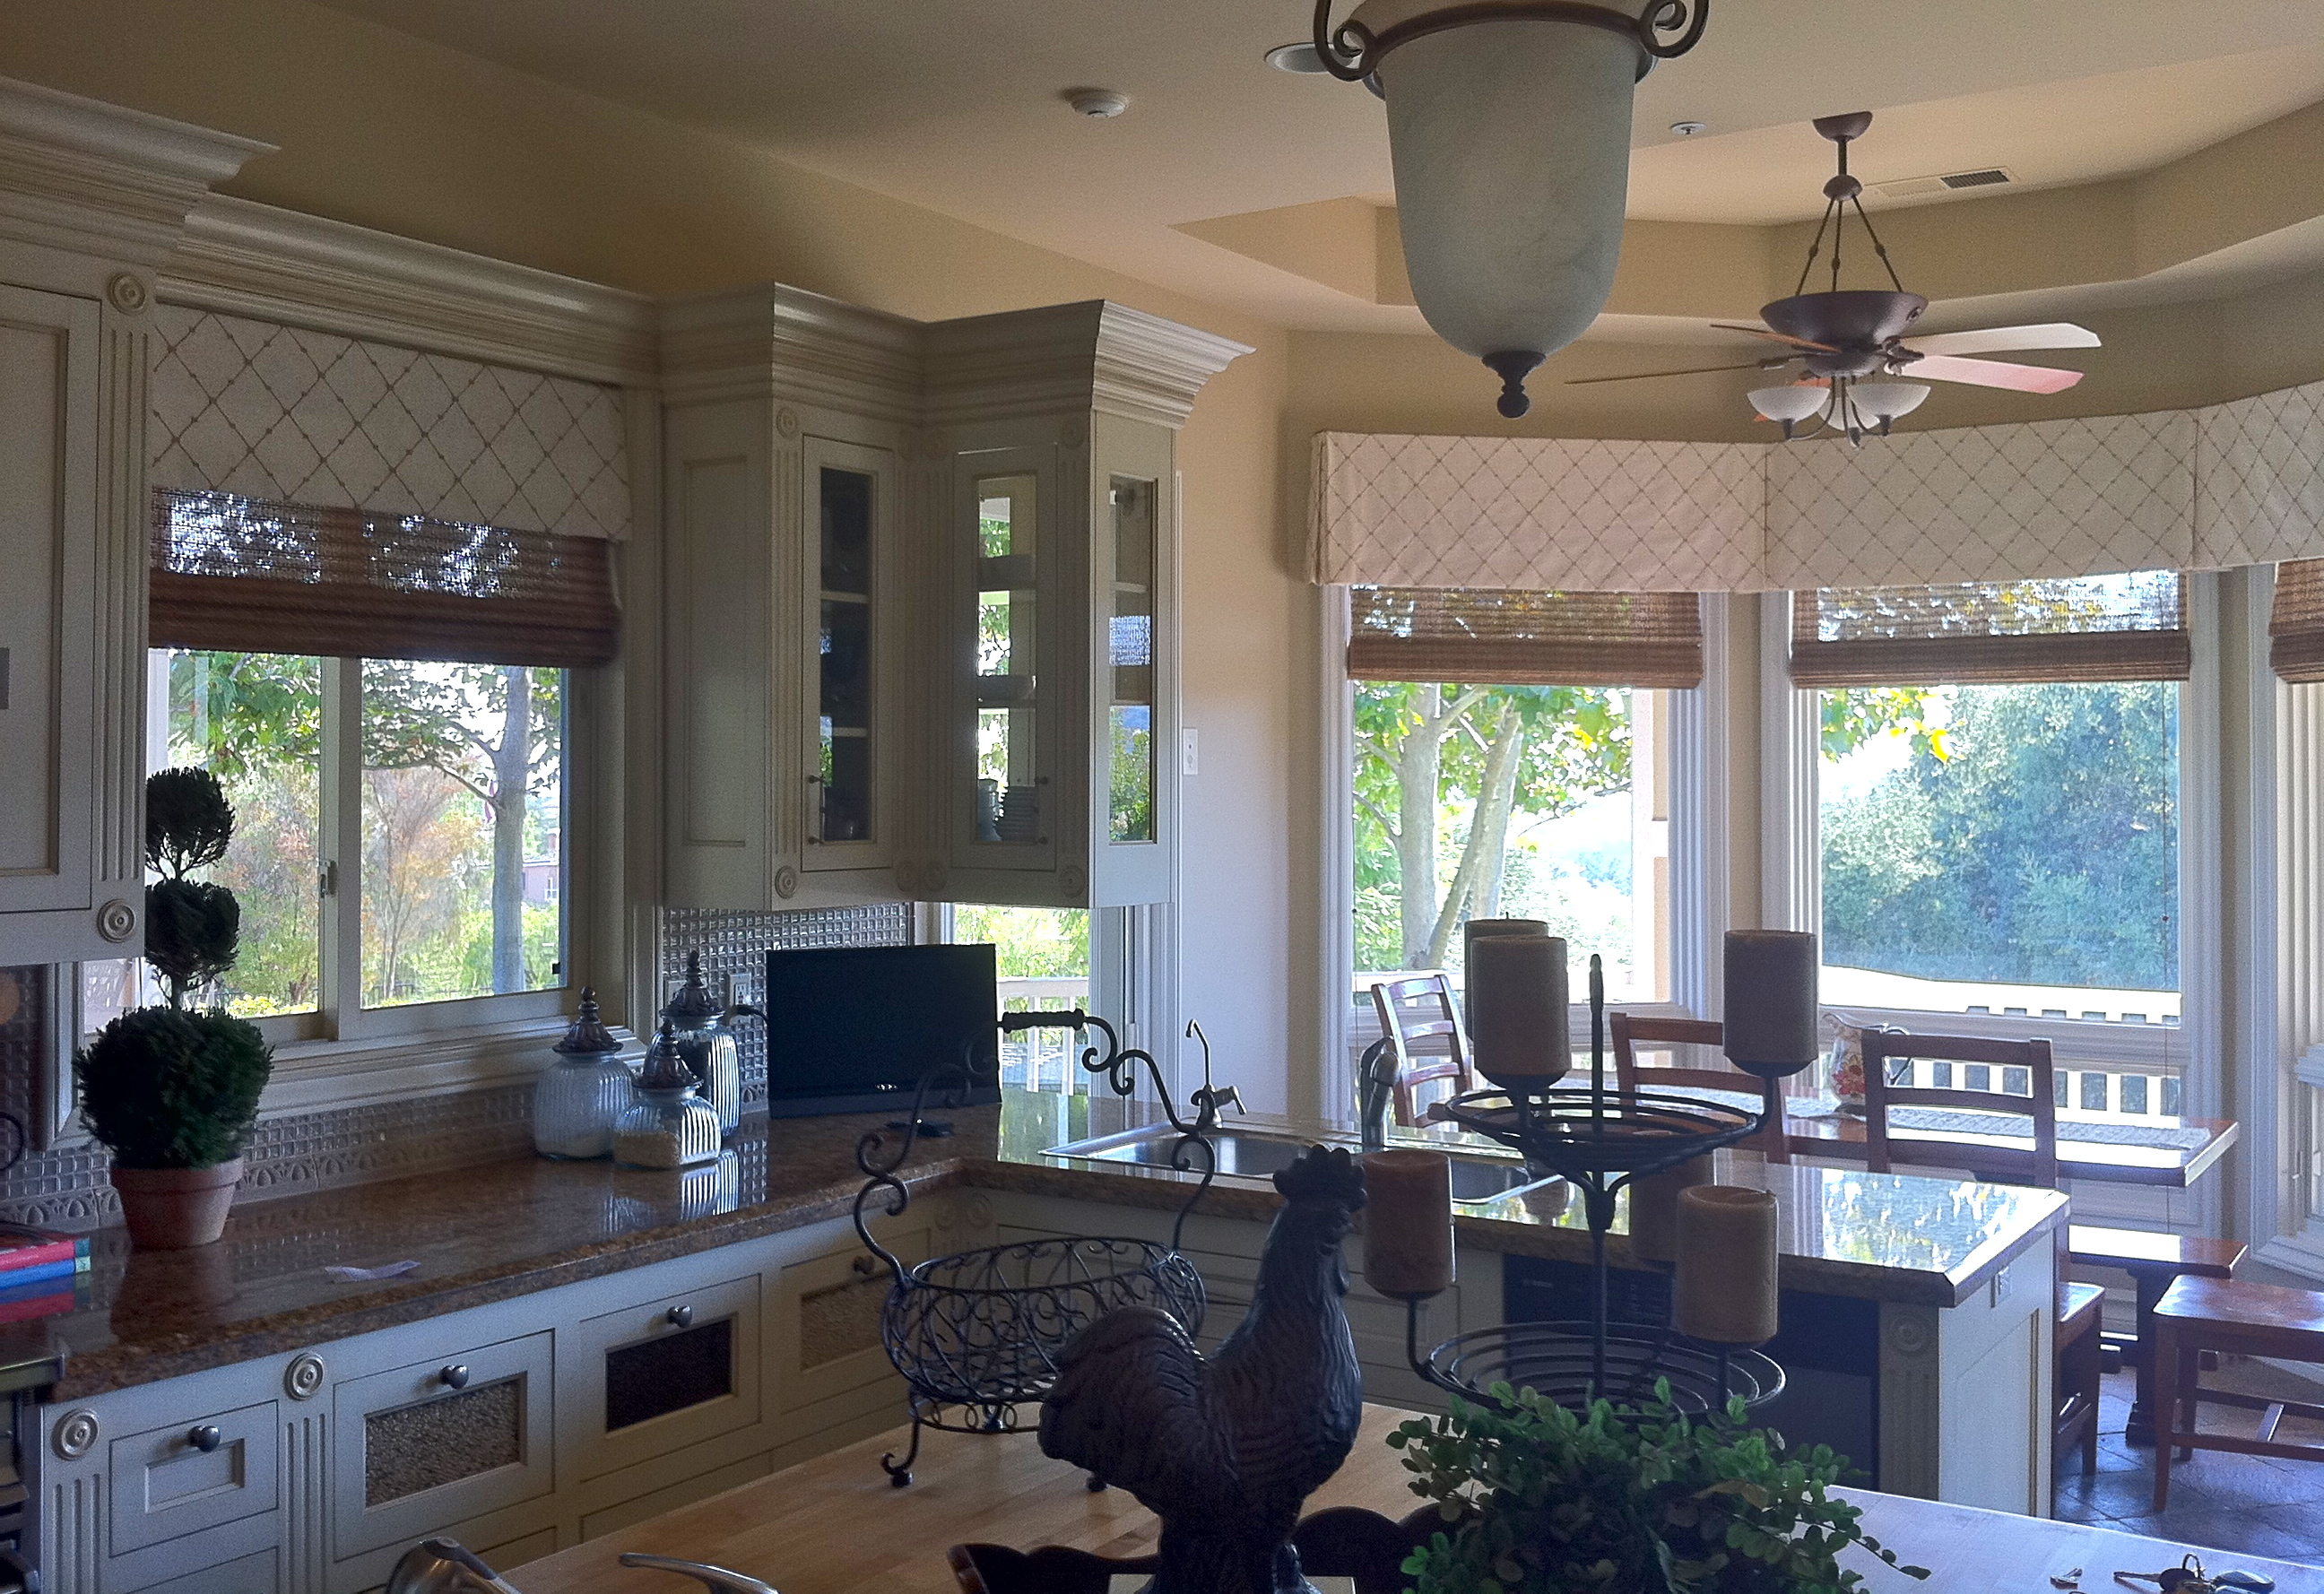 kitchen window valances cannisters before and after treatments  judy 39s